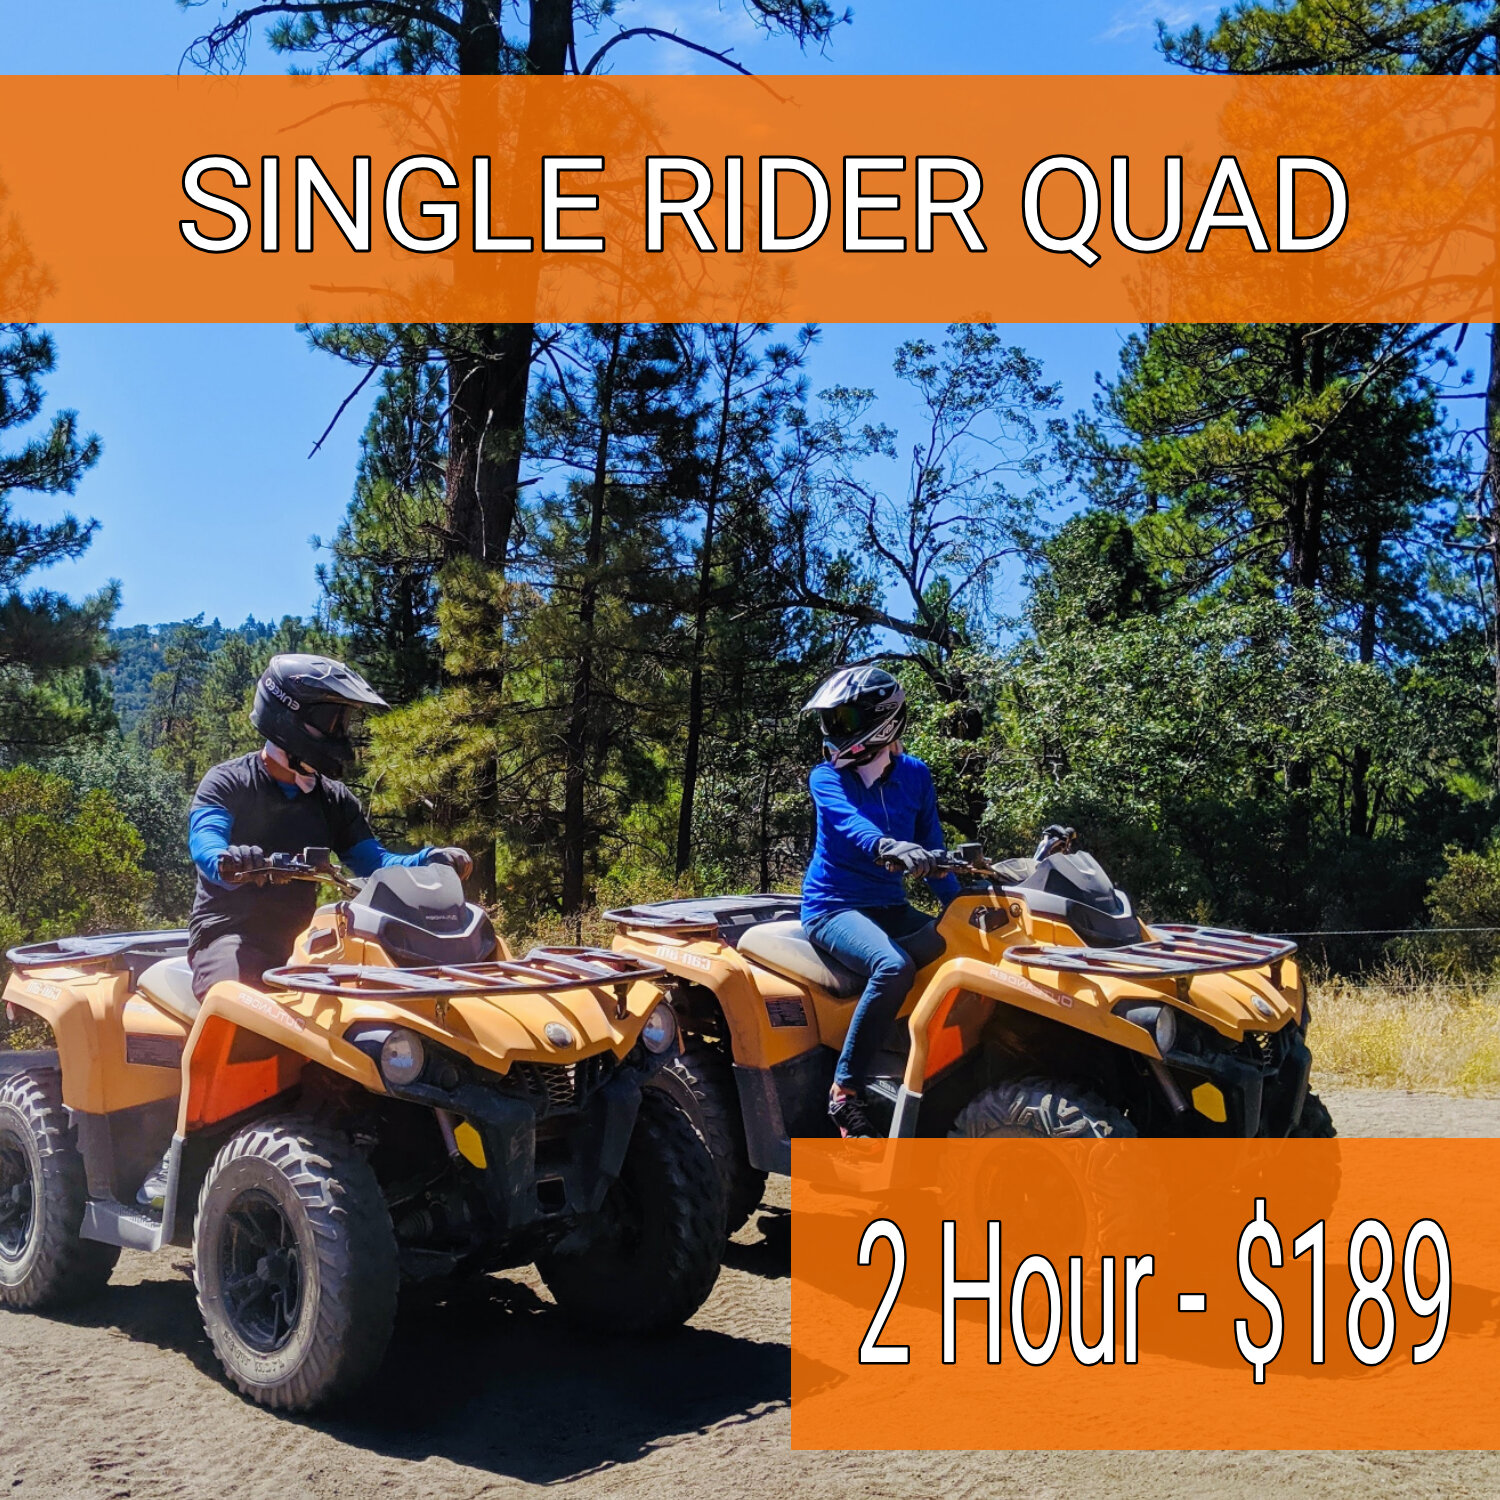 2 HR - private adventure - Max 4 ATVs per group. Min Age 14 years old